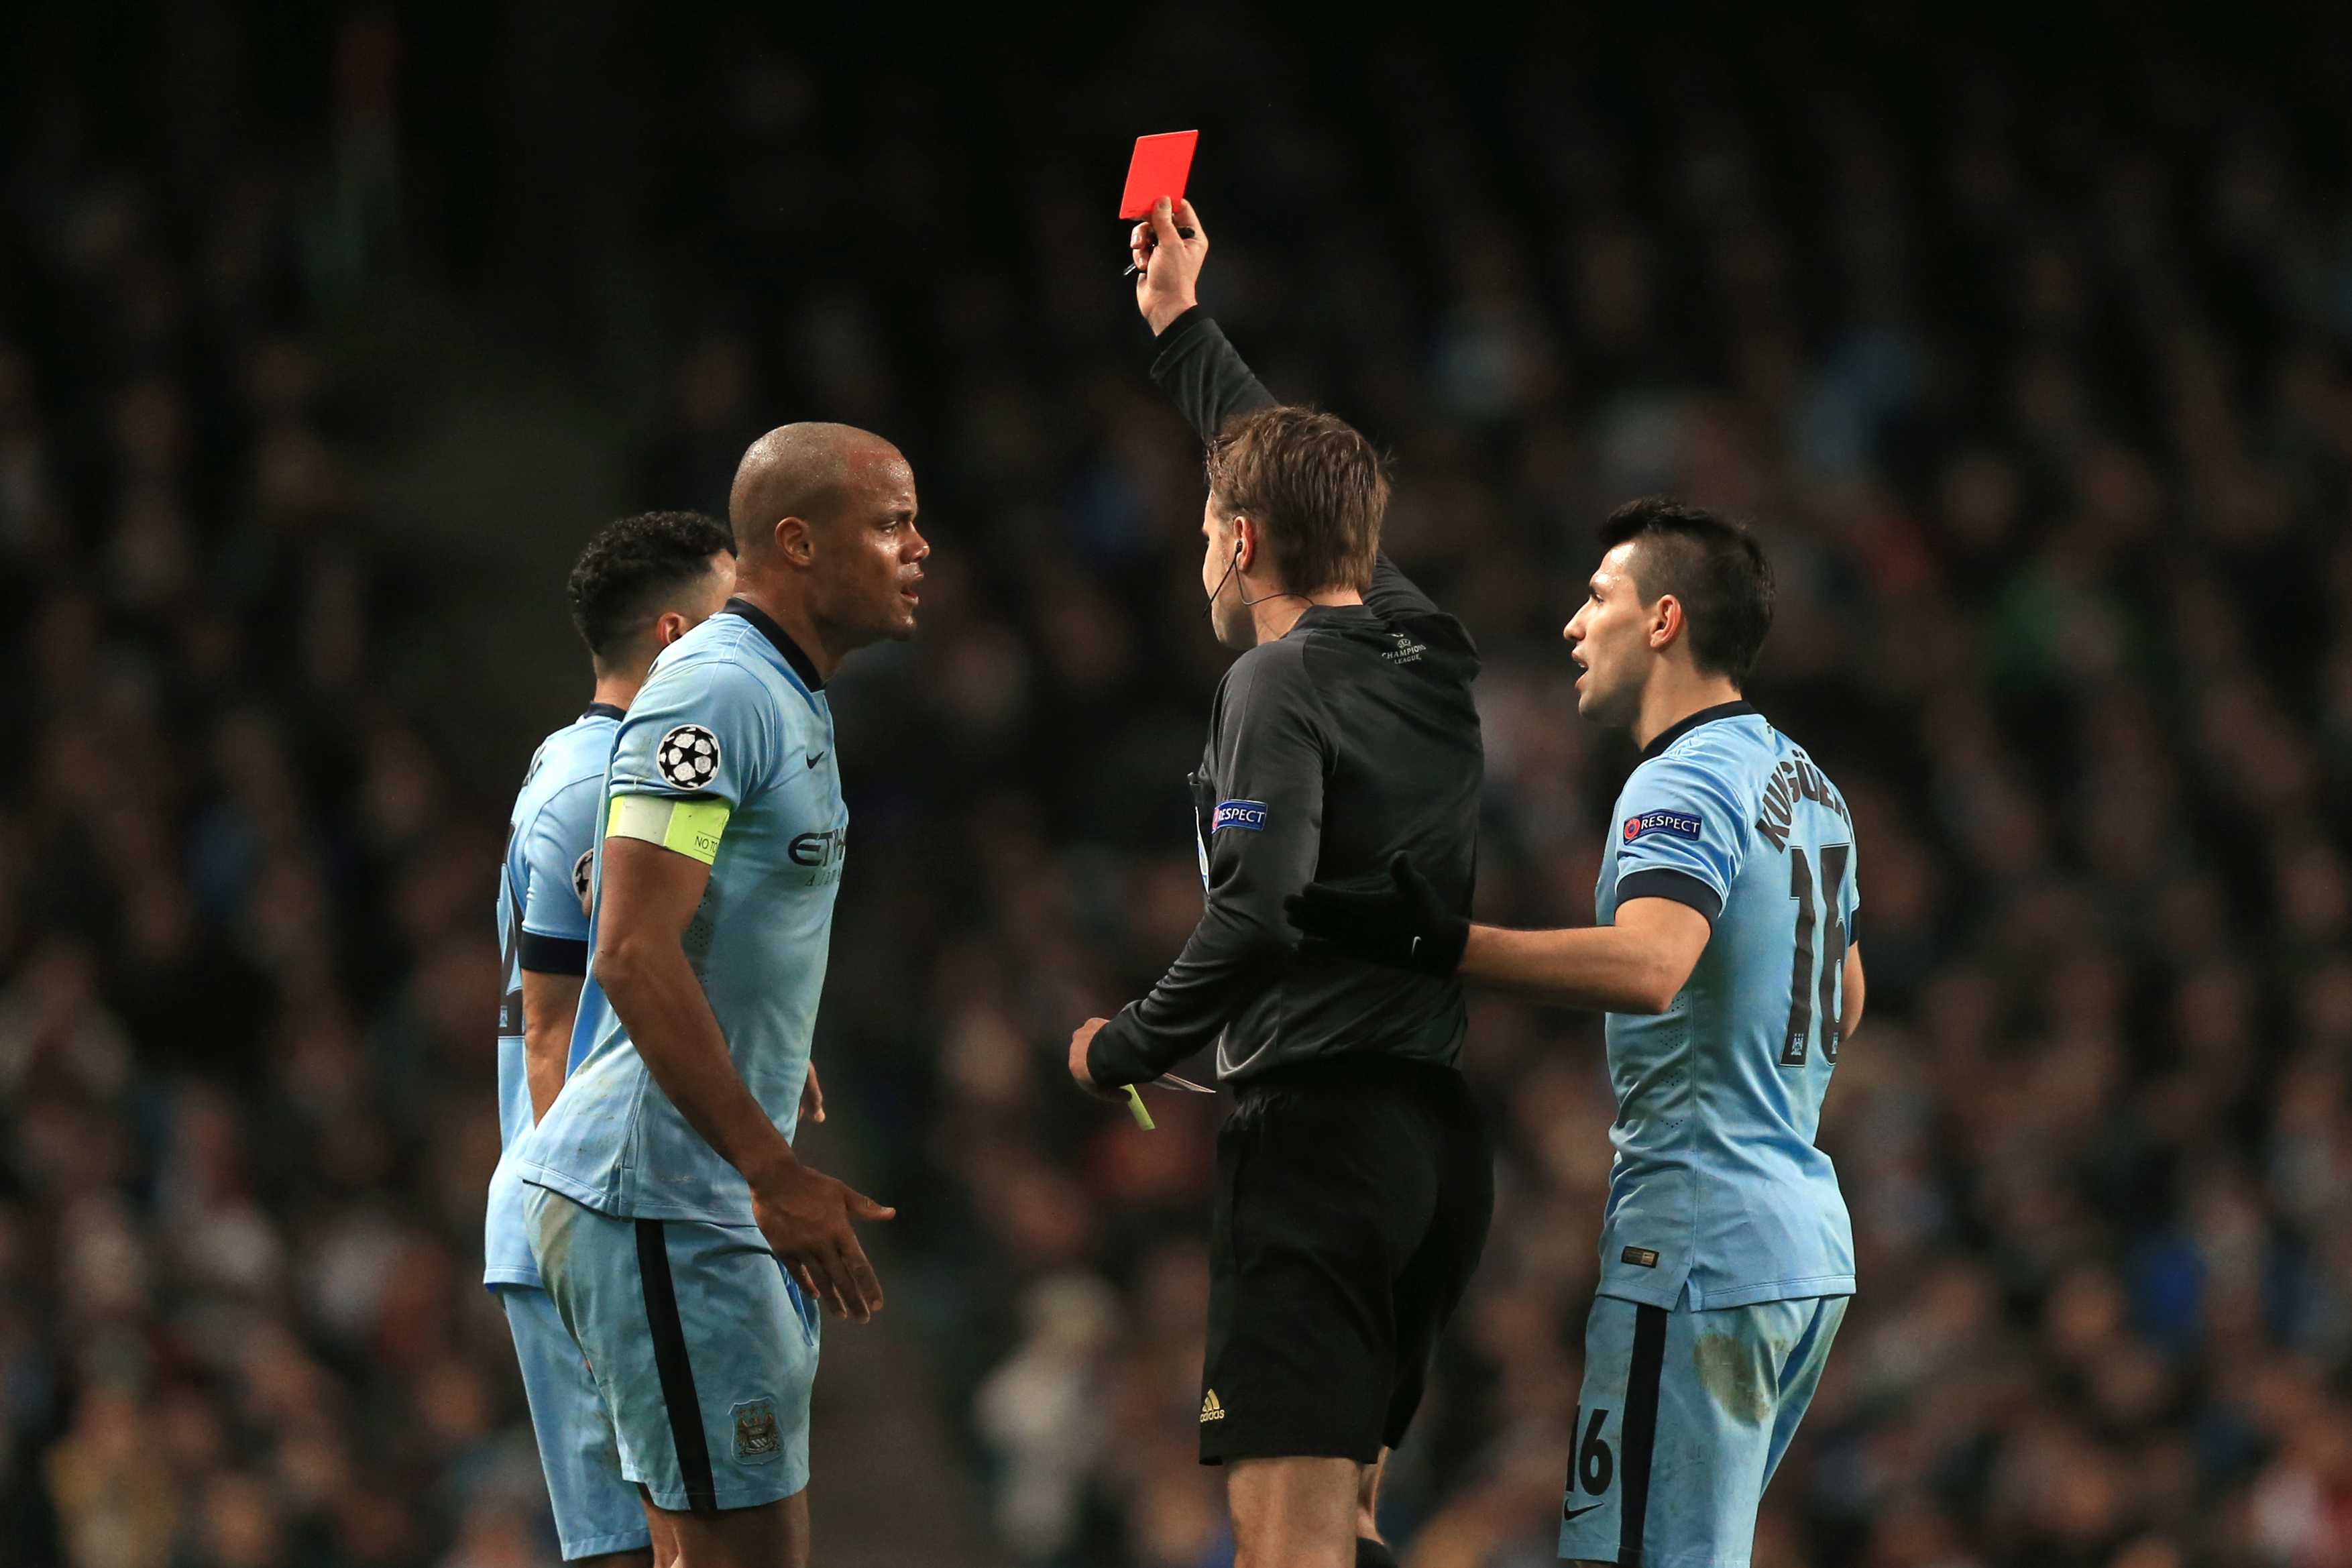 Man City's Gael Clichy, left, is shown the red card by ref Felix Brych.